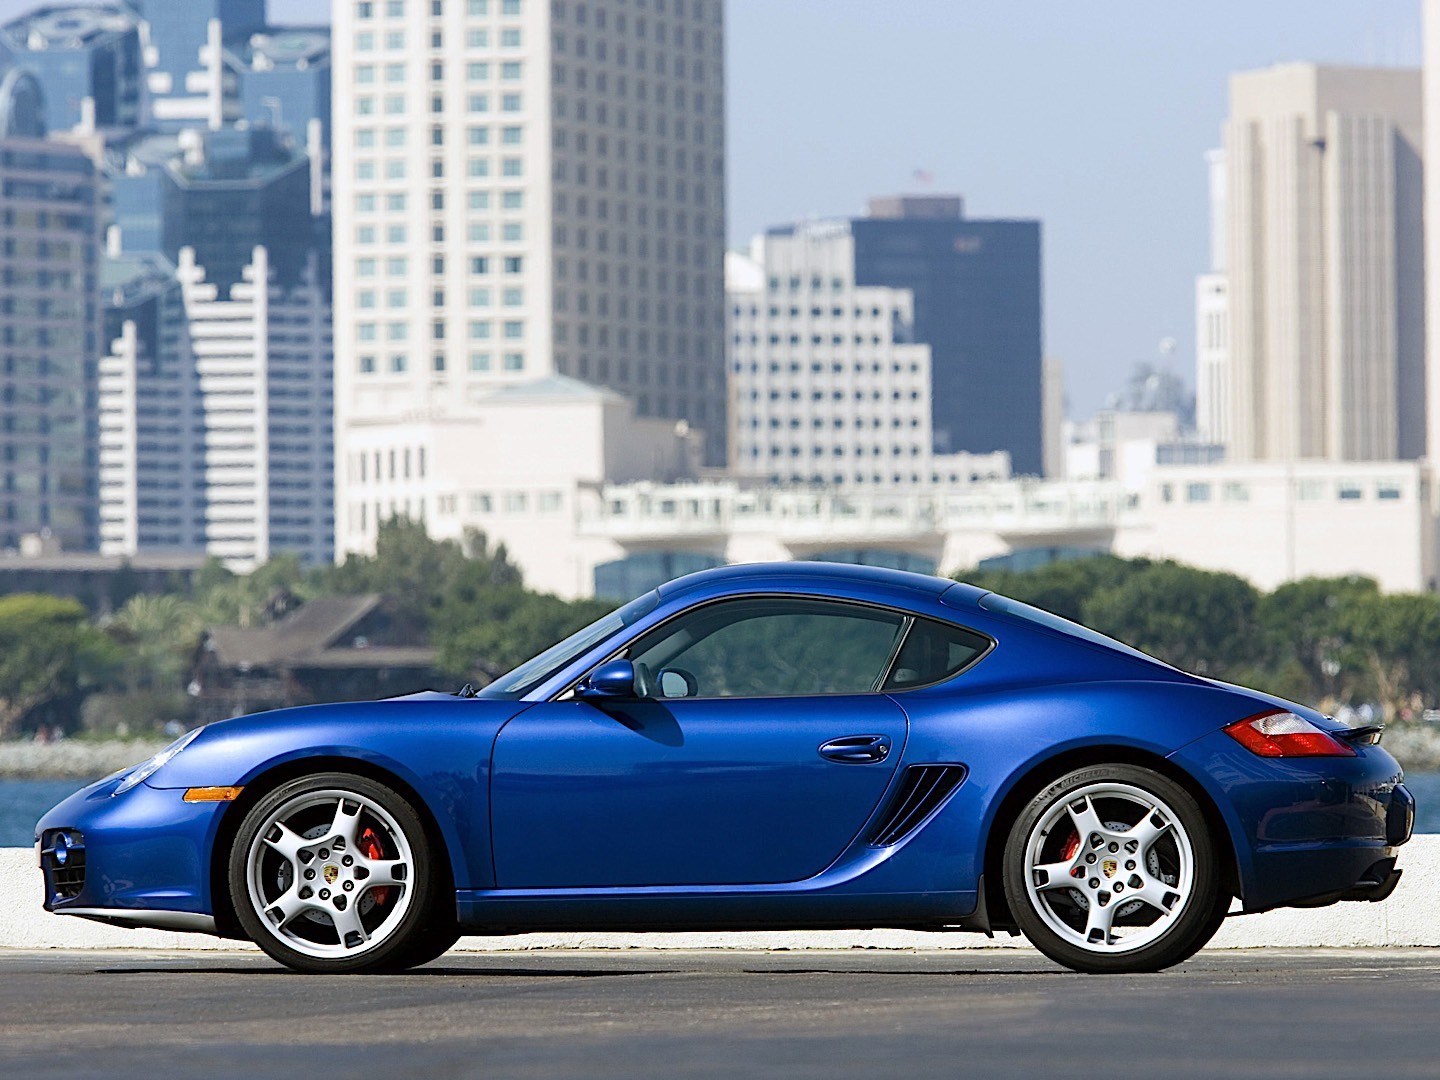 porsche cayman s 987 specs 2005 2006 2007 2008 autoevolution. Black Bedroom Furniture Sets. Home Design Ideas